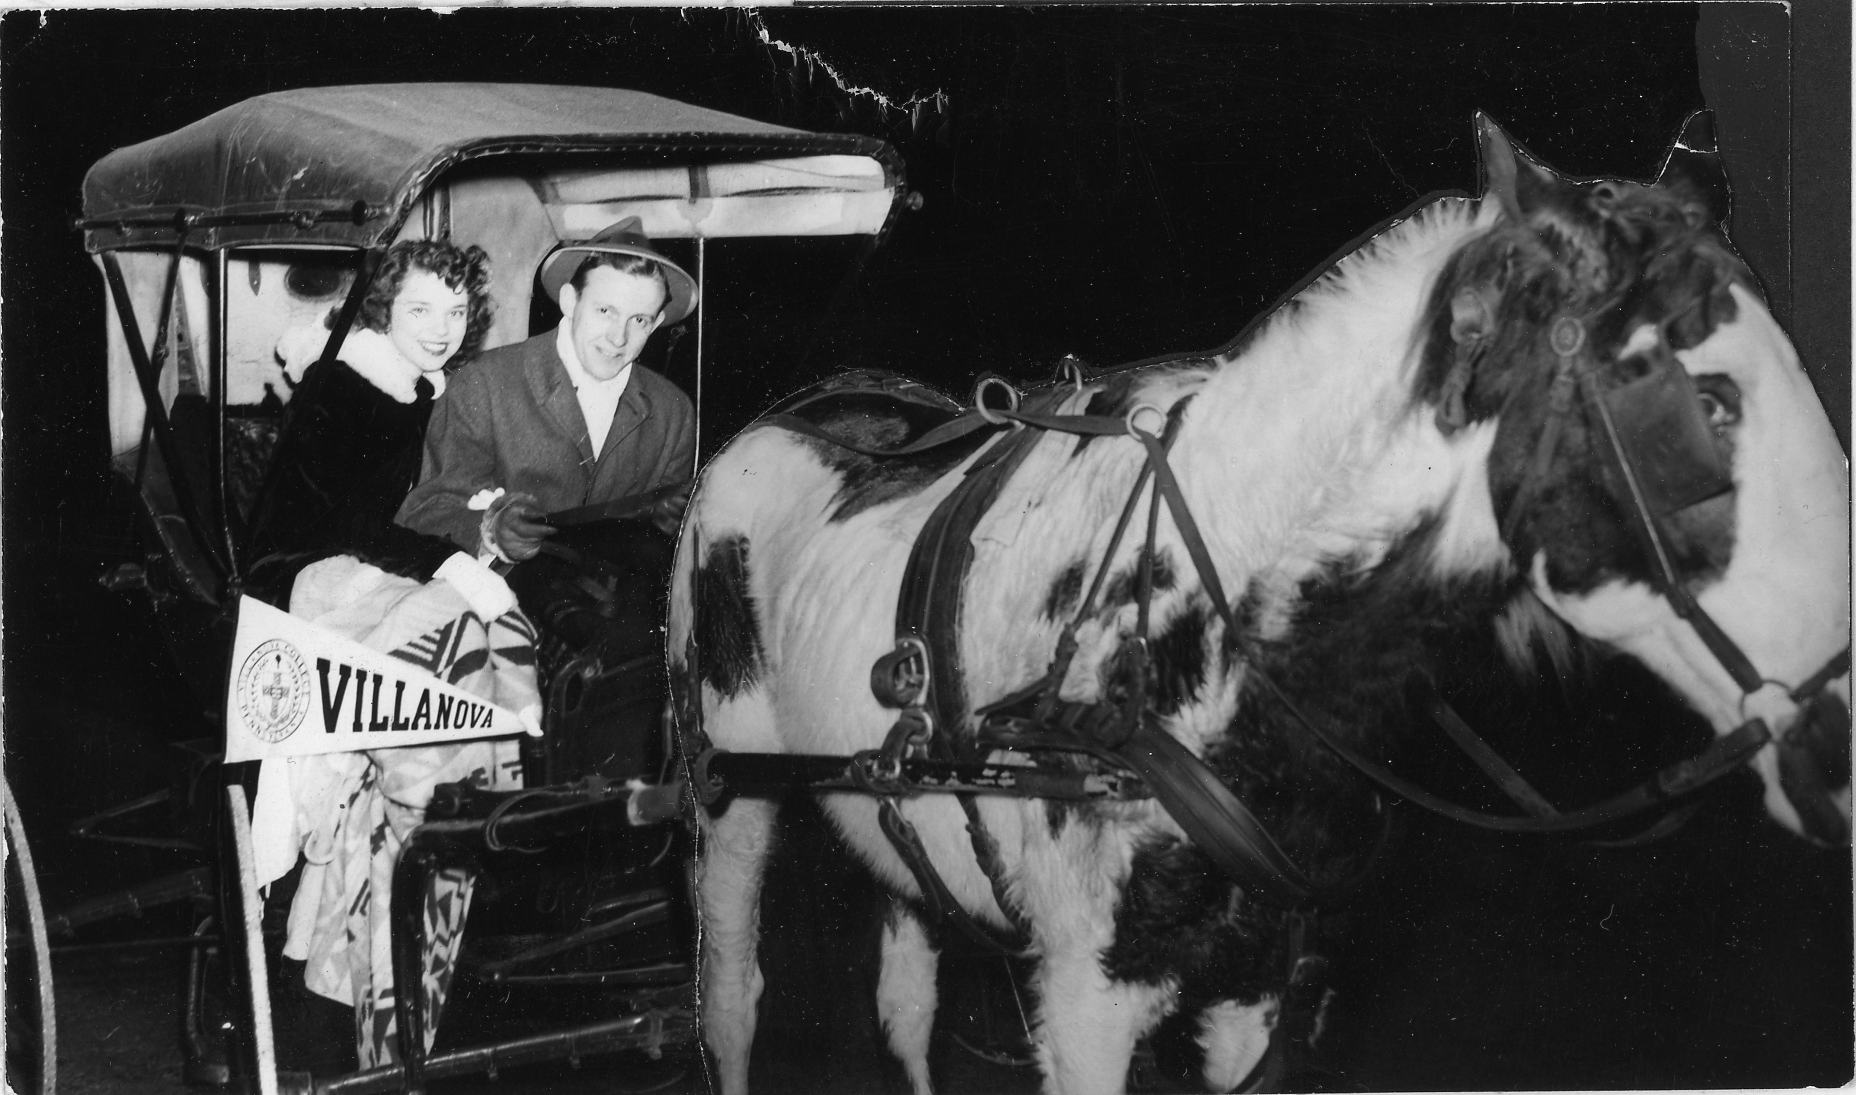 Horse and carriage, 15 January 1943